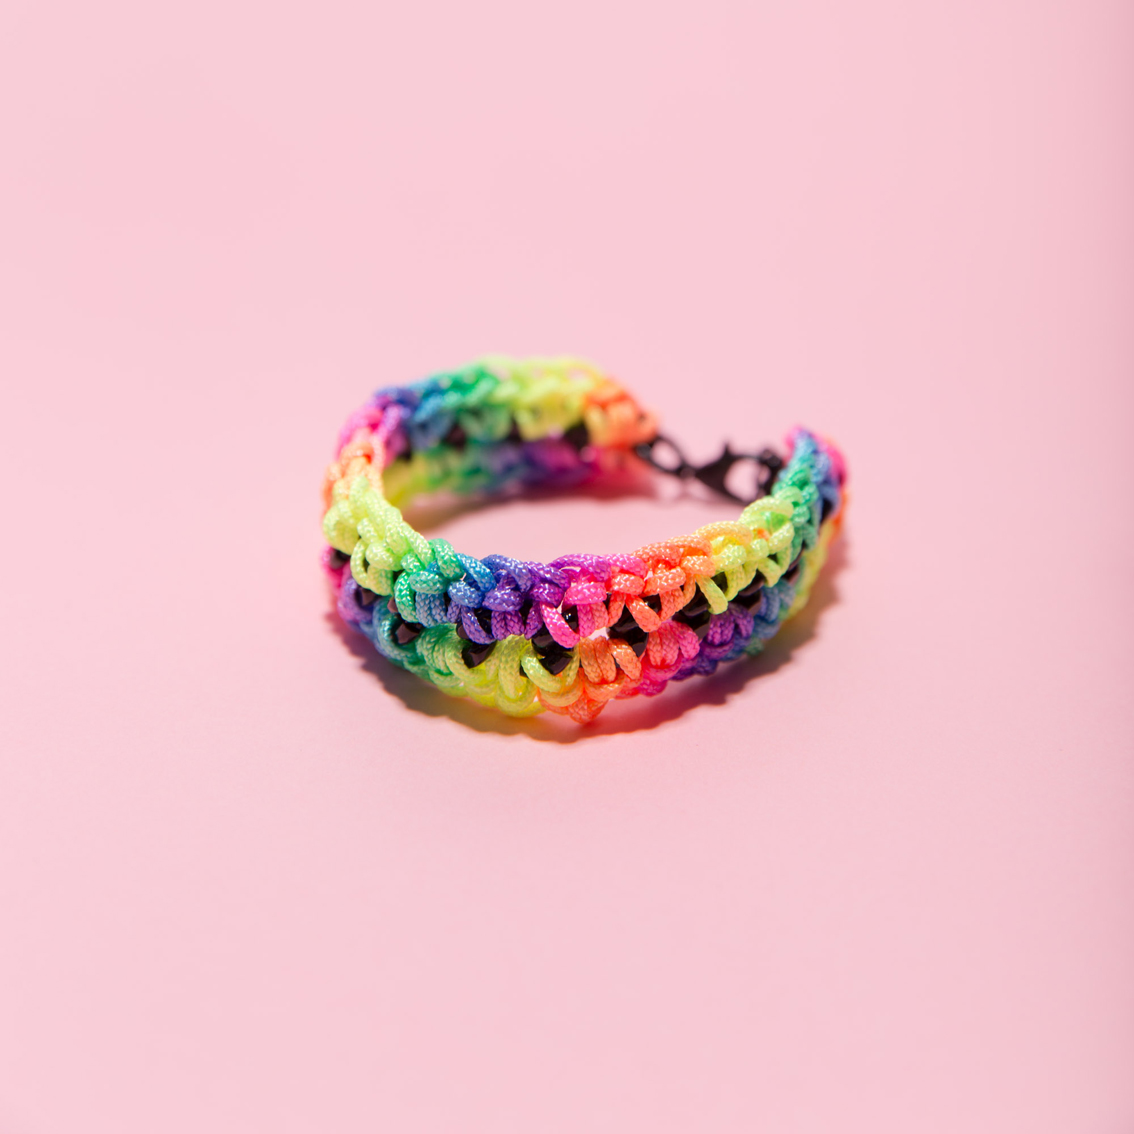 Rainbow Crocheted Bracelet